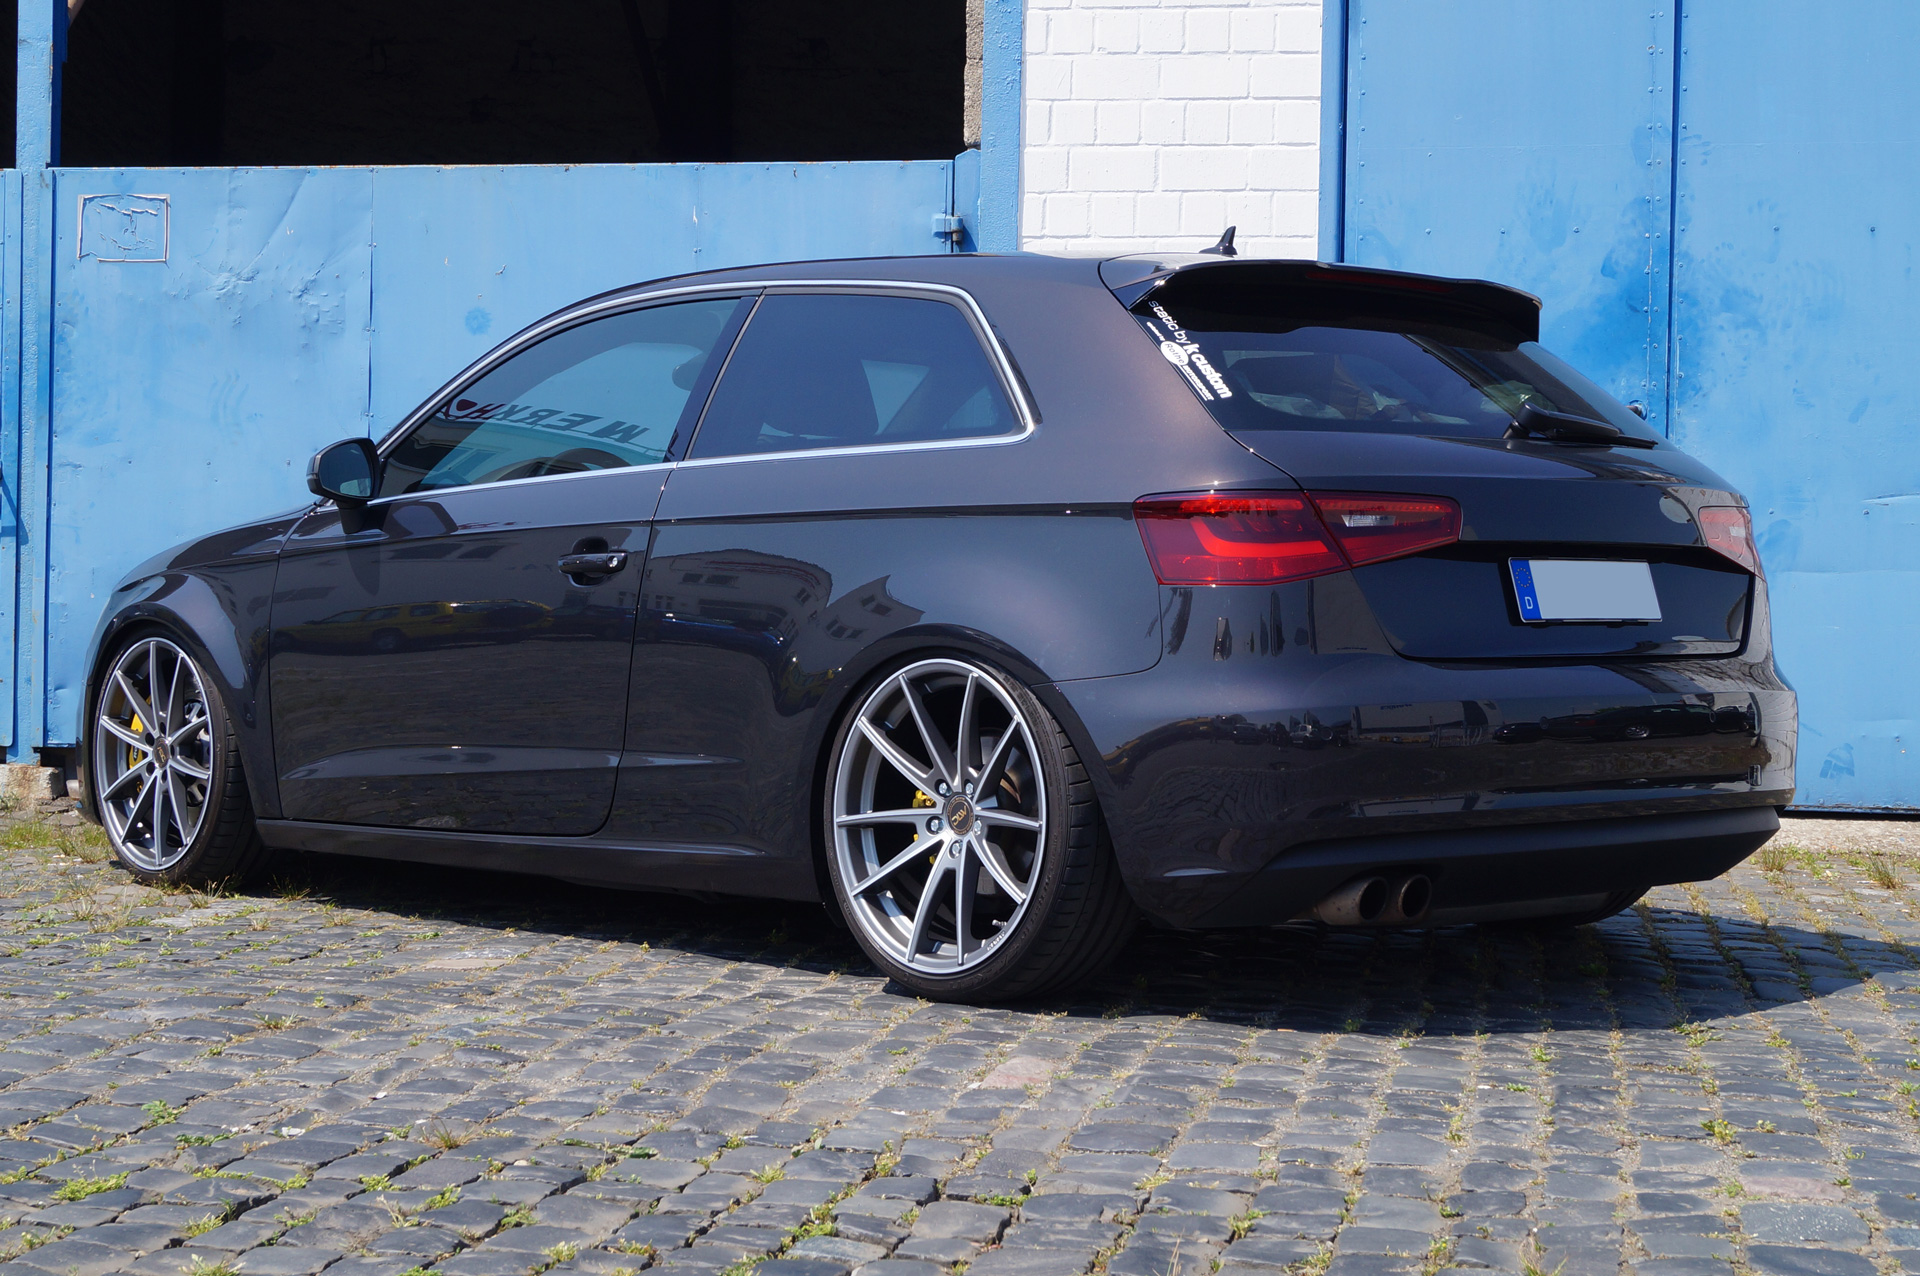 audi a3 8v mainhattan wheels leichtmetallr der gmbh. Black Bedroom Furniture Sets. Home Design Ideas